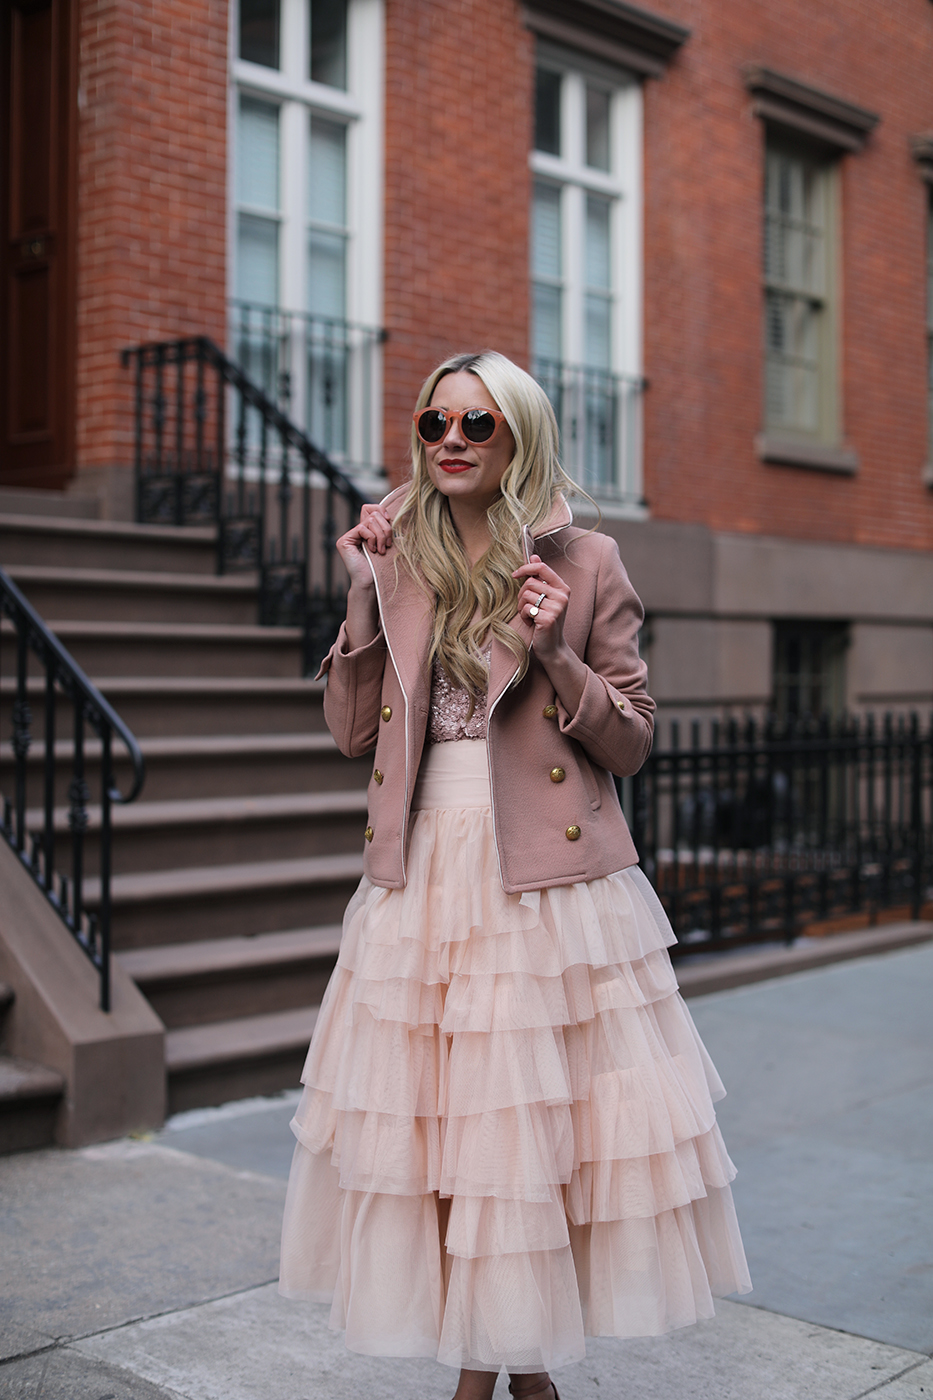 pink-sunglasses-blush-peacoat-jcrew-sequin-tank-pumps-nordstrom-asos-blair-eadie